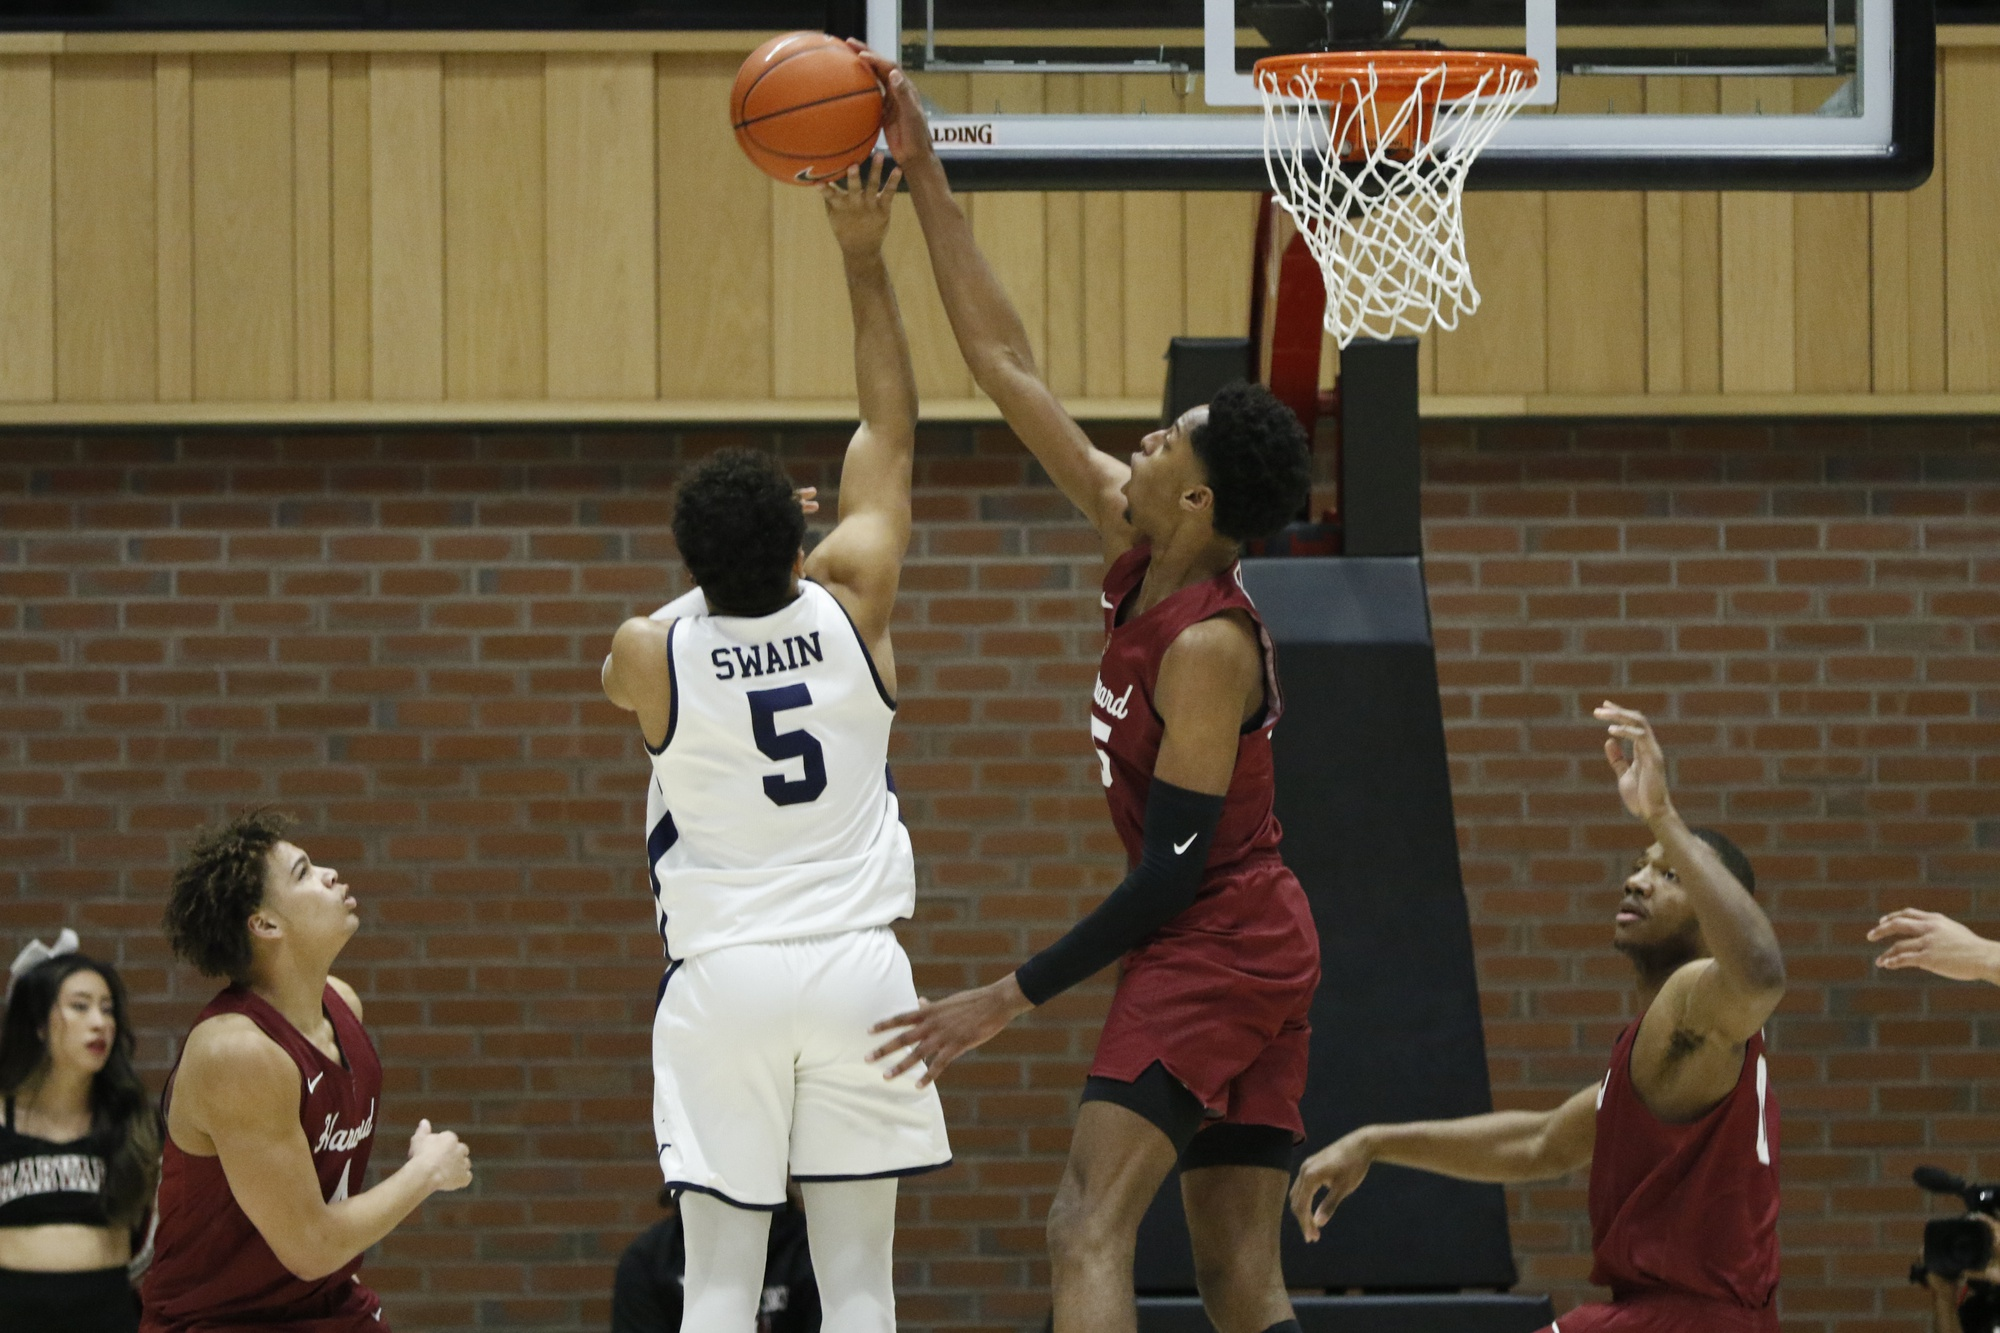 Senior forward Robert Baker earned four rejections on Saturday night against Yale.